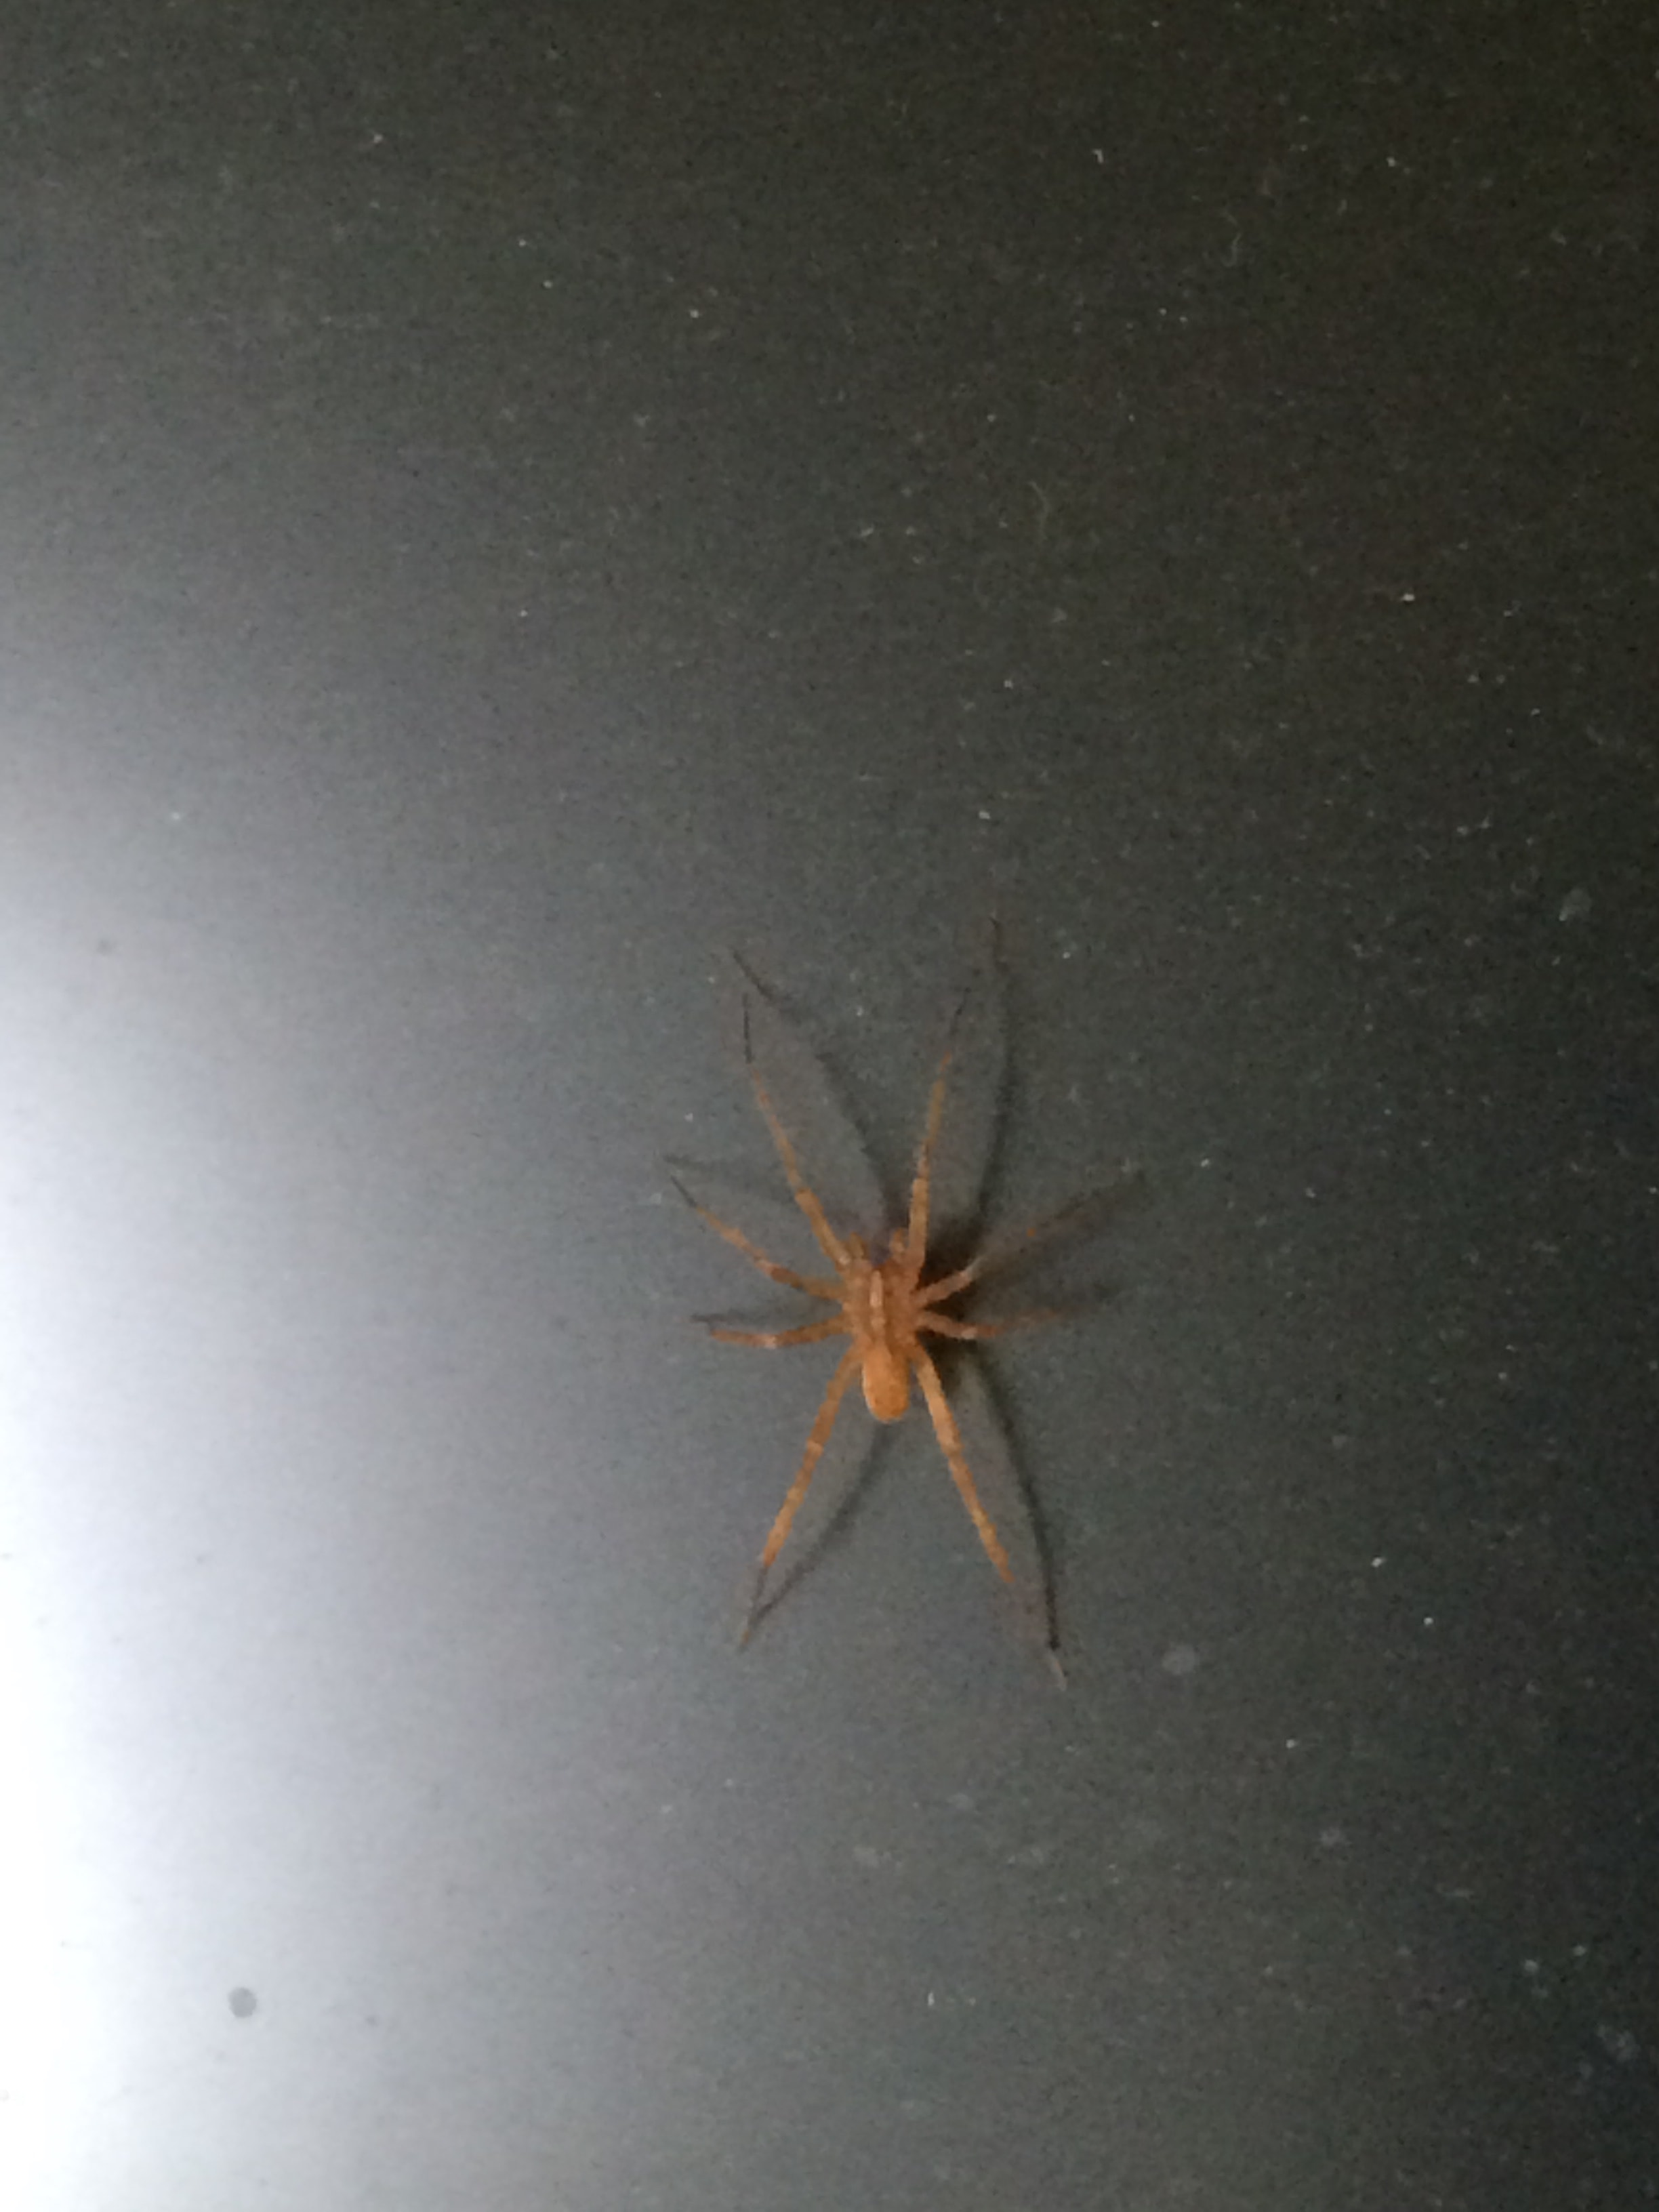 Picture of Anahita punctulata (Southeastern Wandering Spider) - Dorsal